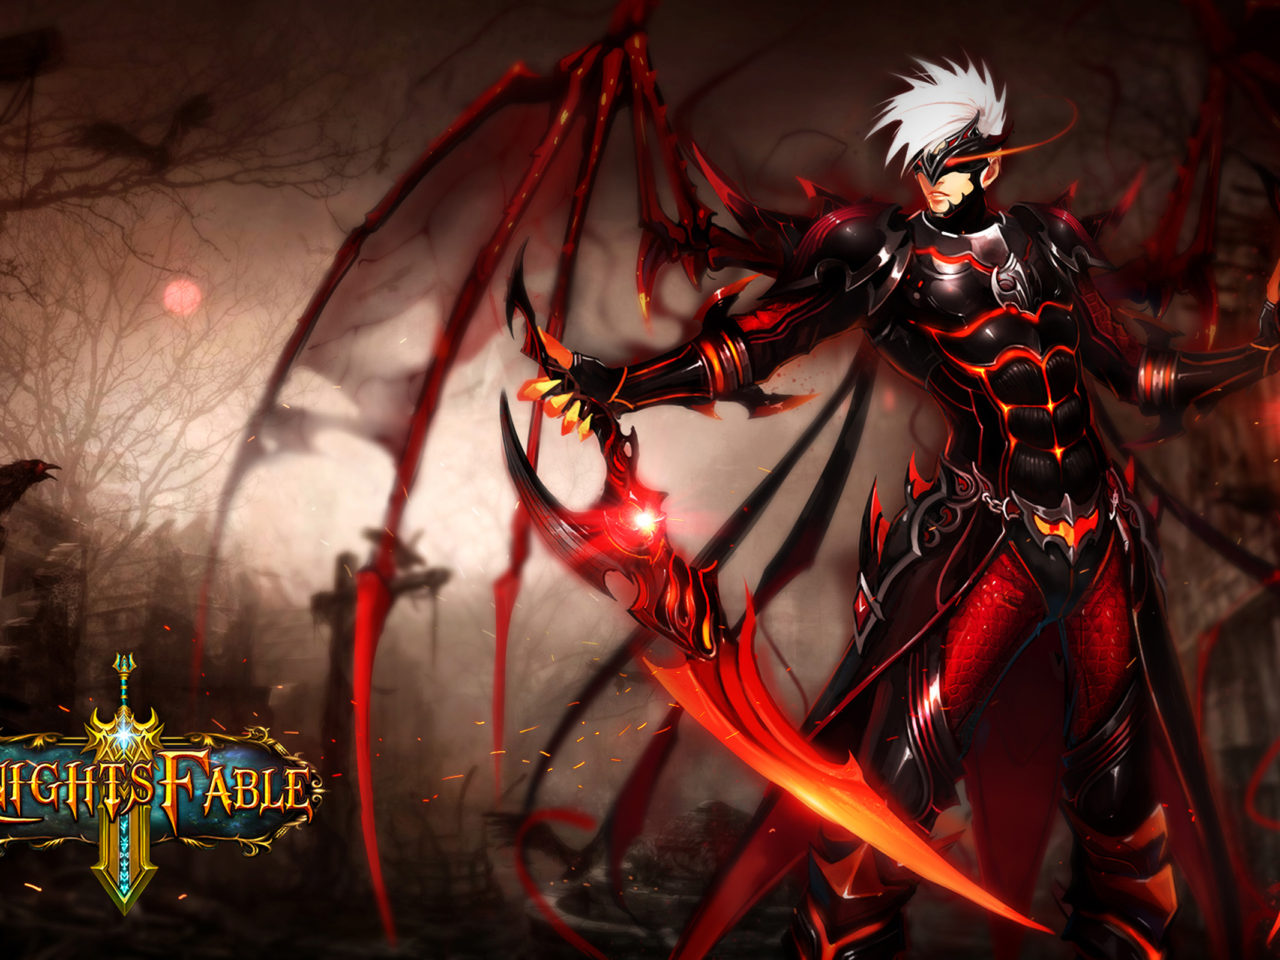 Hd Batman Iphone Wallpaper Knights Fable Fantasy Mmo Rpg Online Hero Heroes King